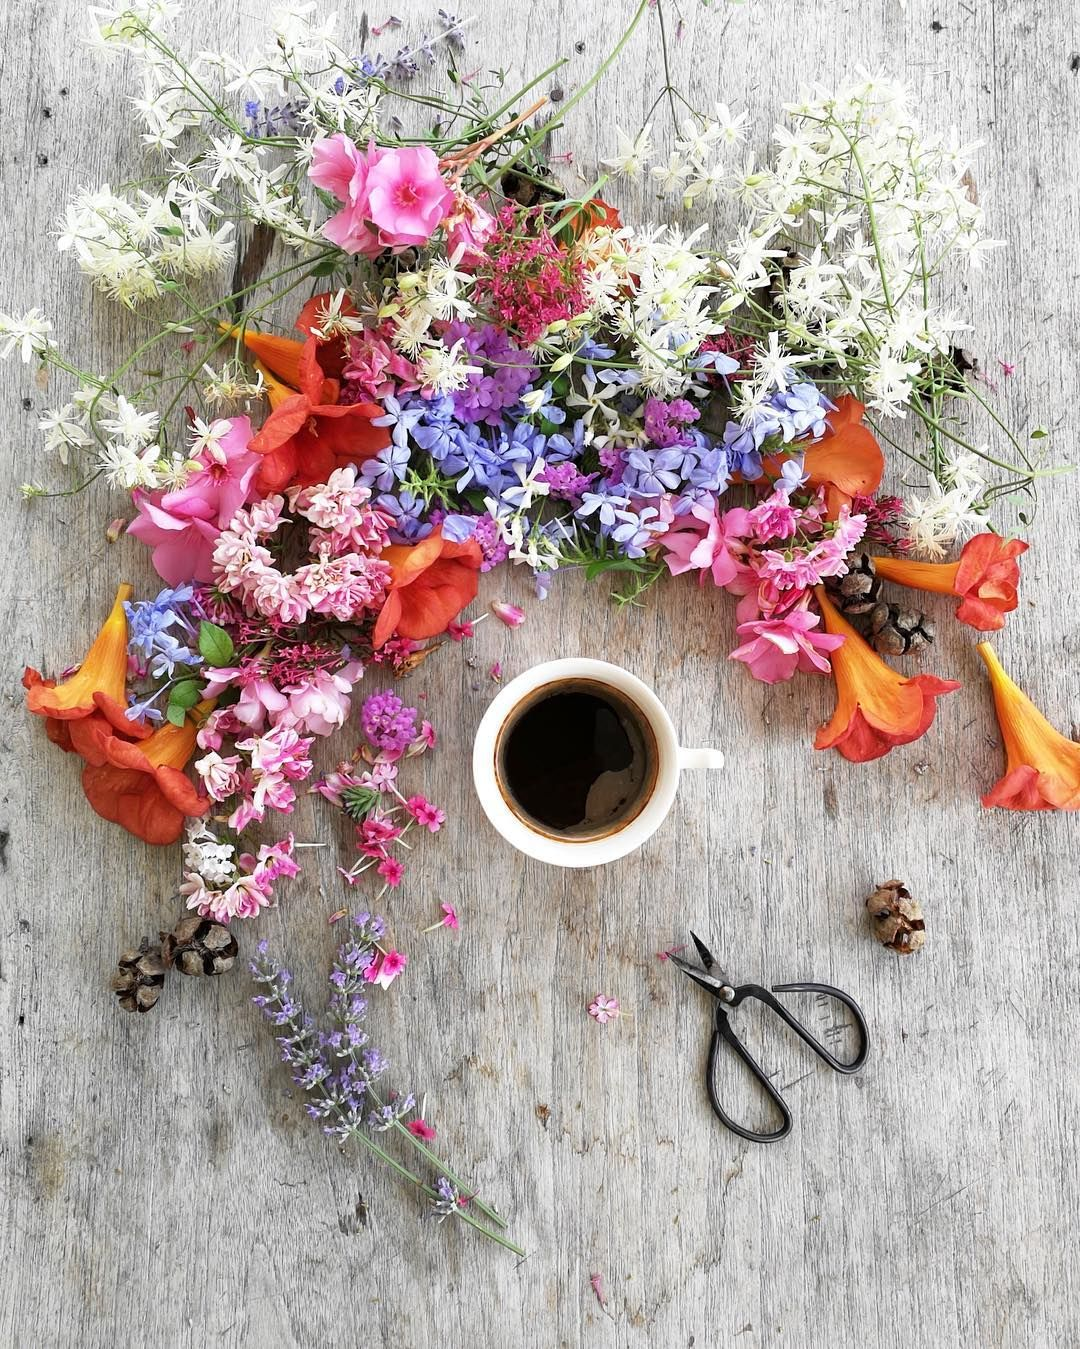 Coffee Time With These Beautiful Summer Flowers Bonjour